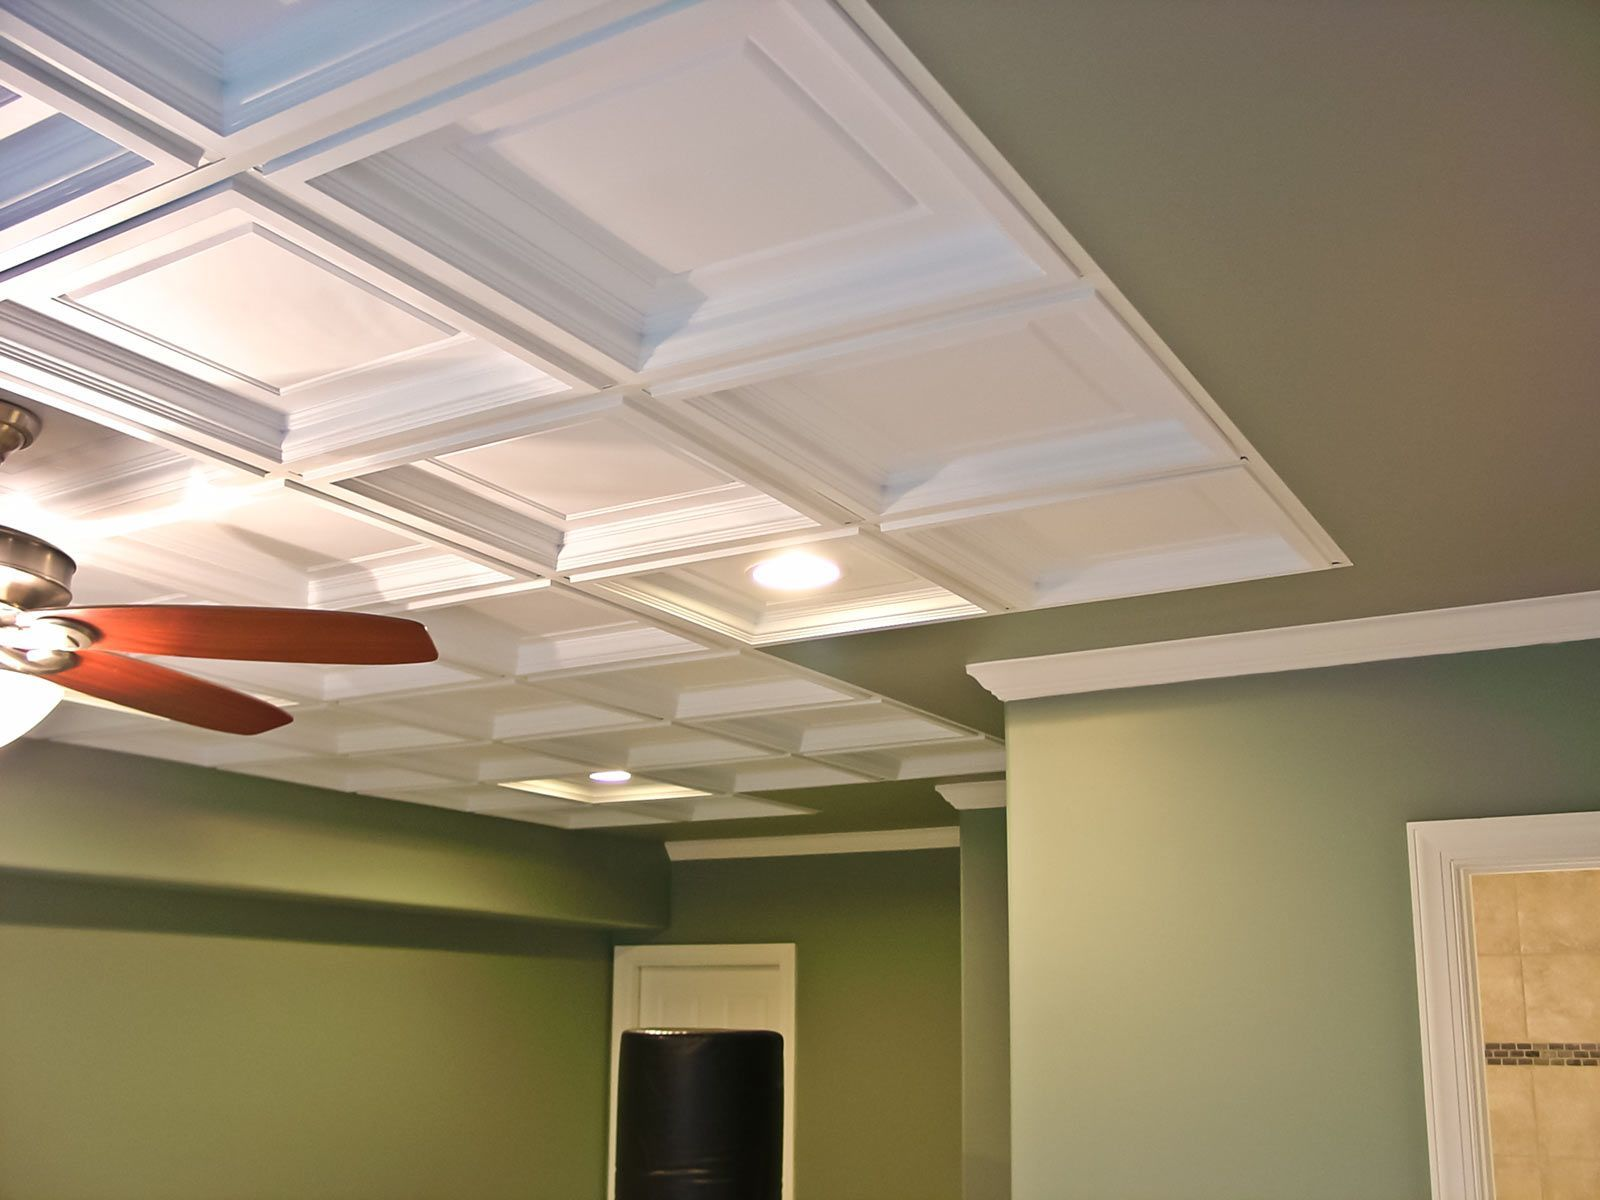 The Beautiful Madison Vinyl Ceiling Tile Is Installed In This Drop Grid System Because Of Its Coffer Sty Ceiling Tiles Basement Basement Ceiling Ceiling Tiles